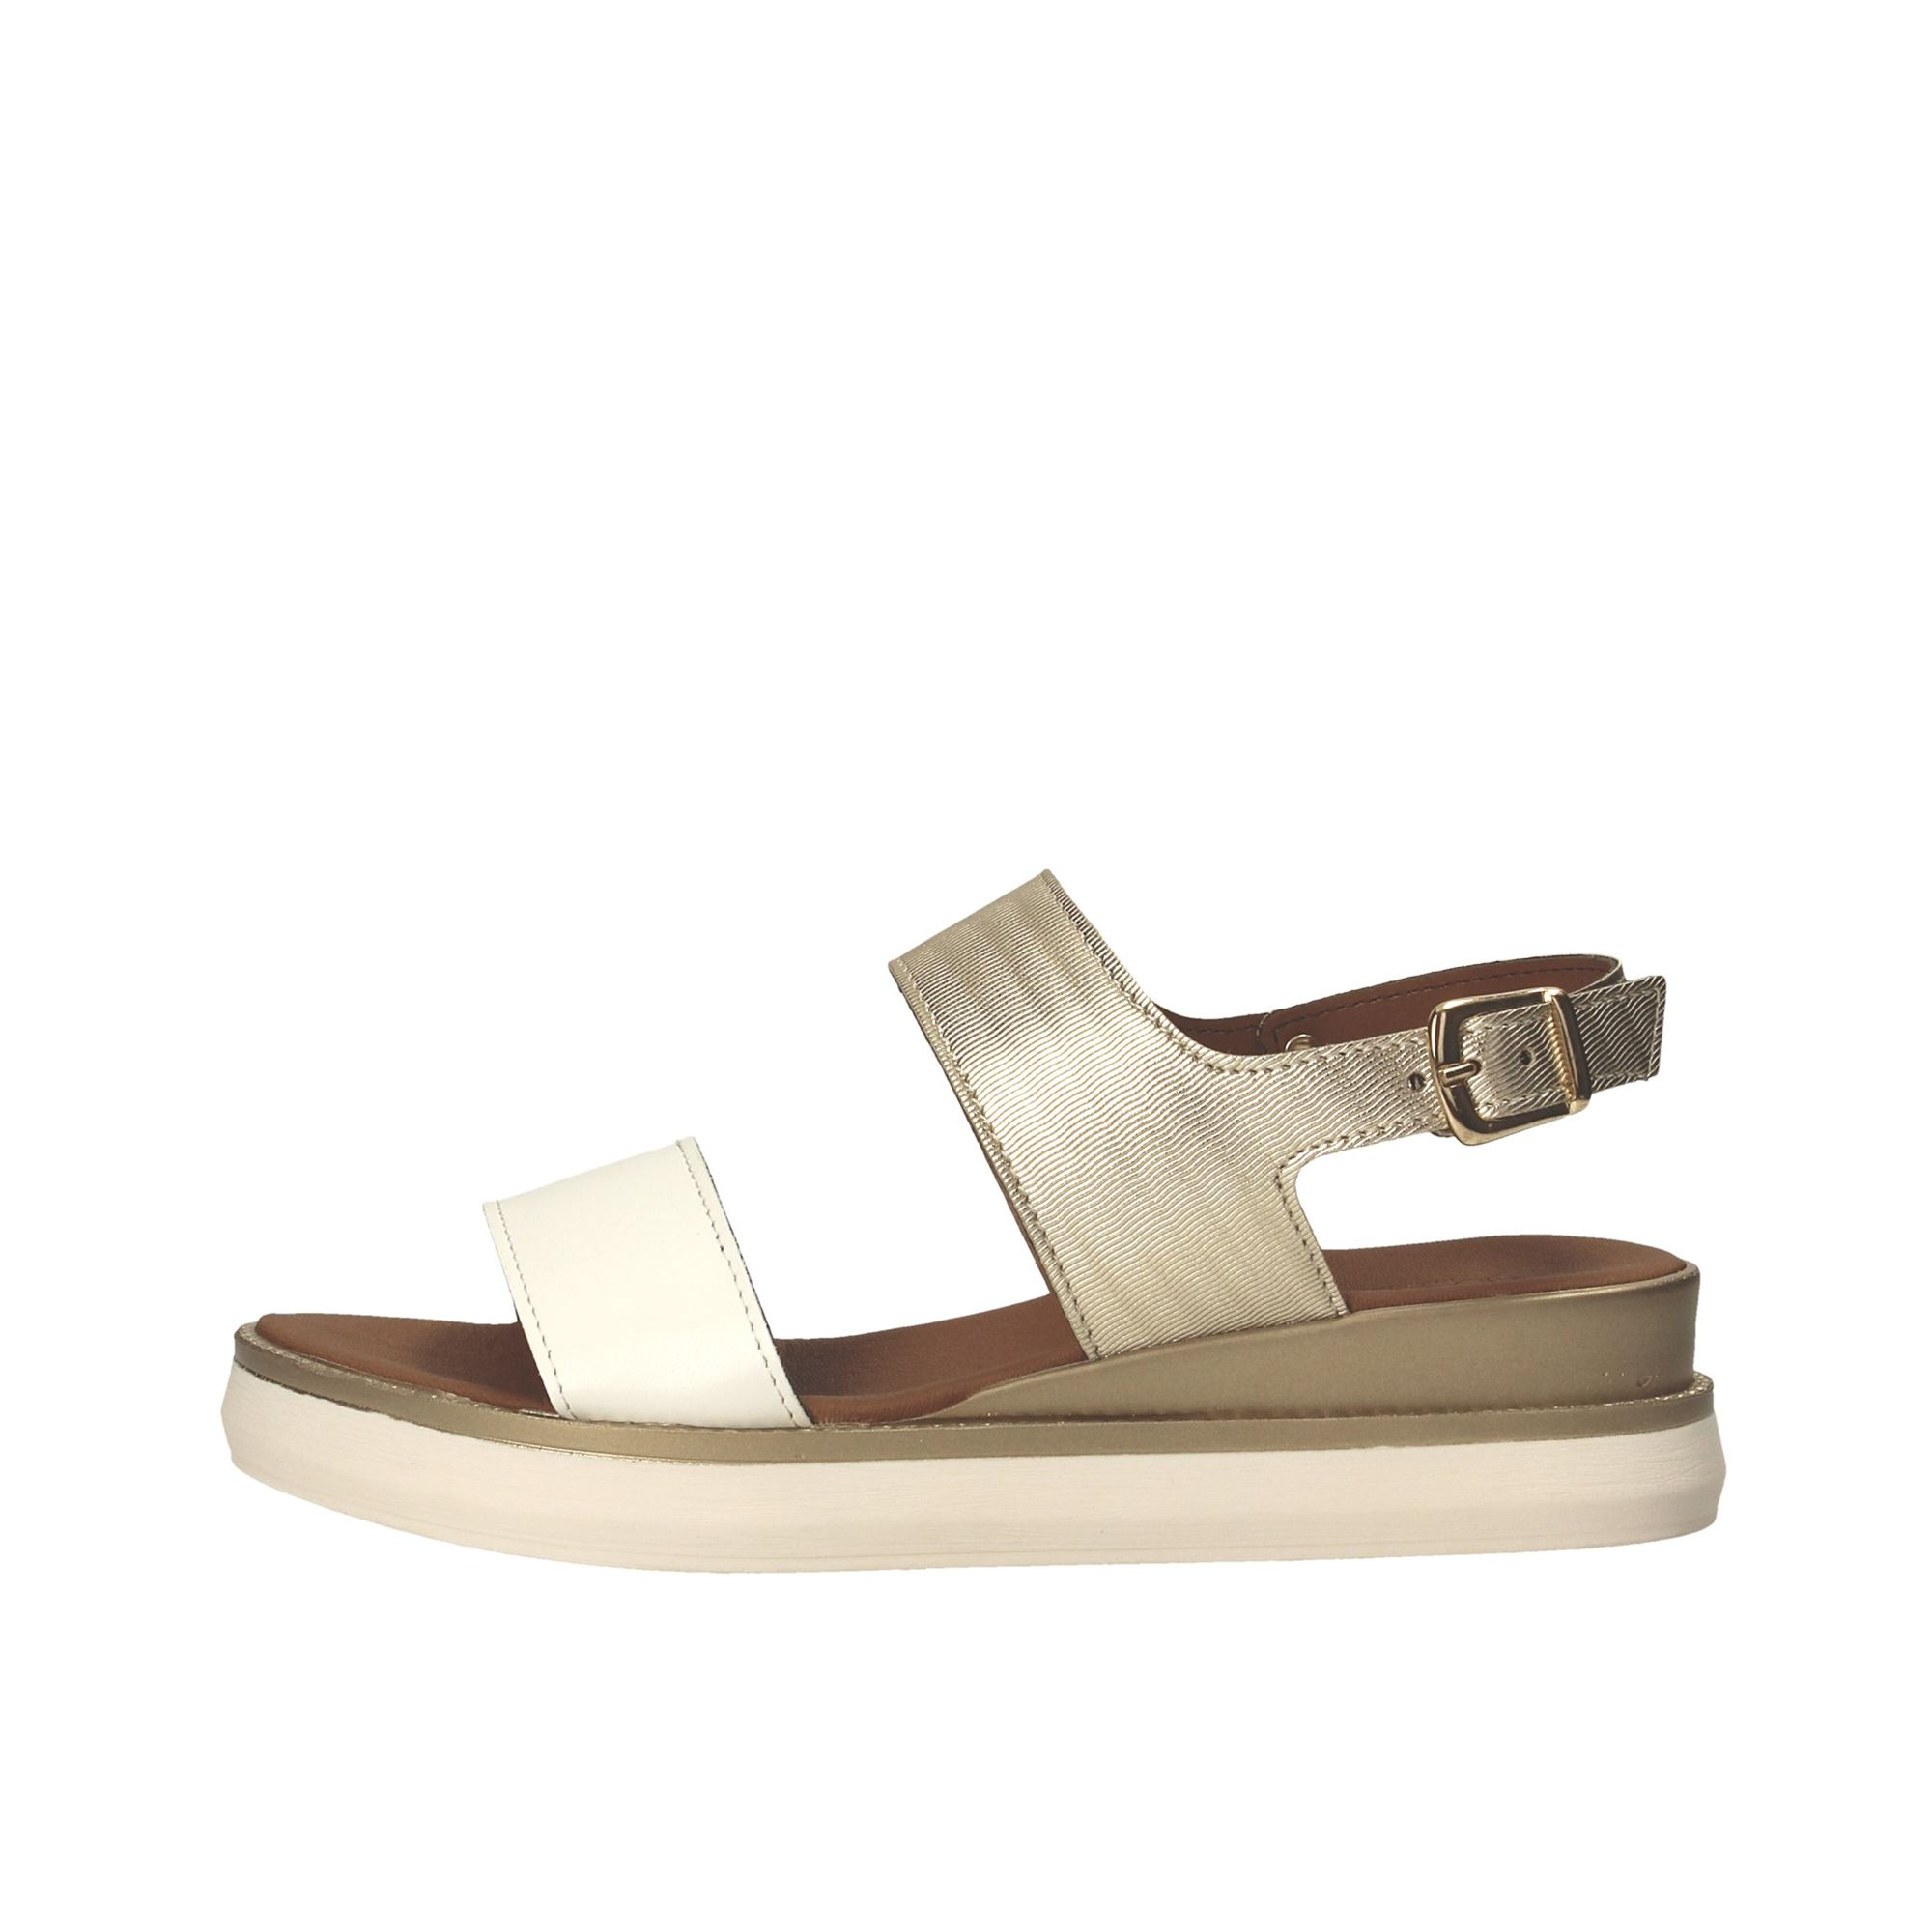 Tata Italia Shoes Woman Sandali White/gold 250-CONC